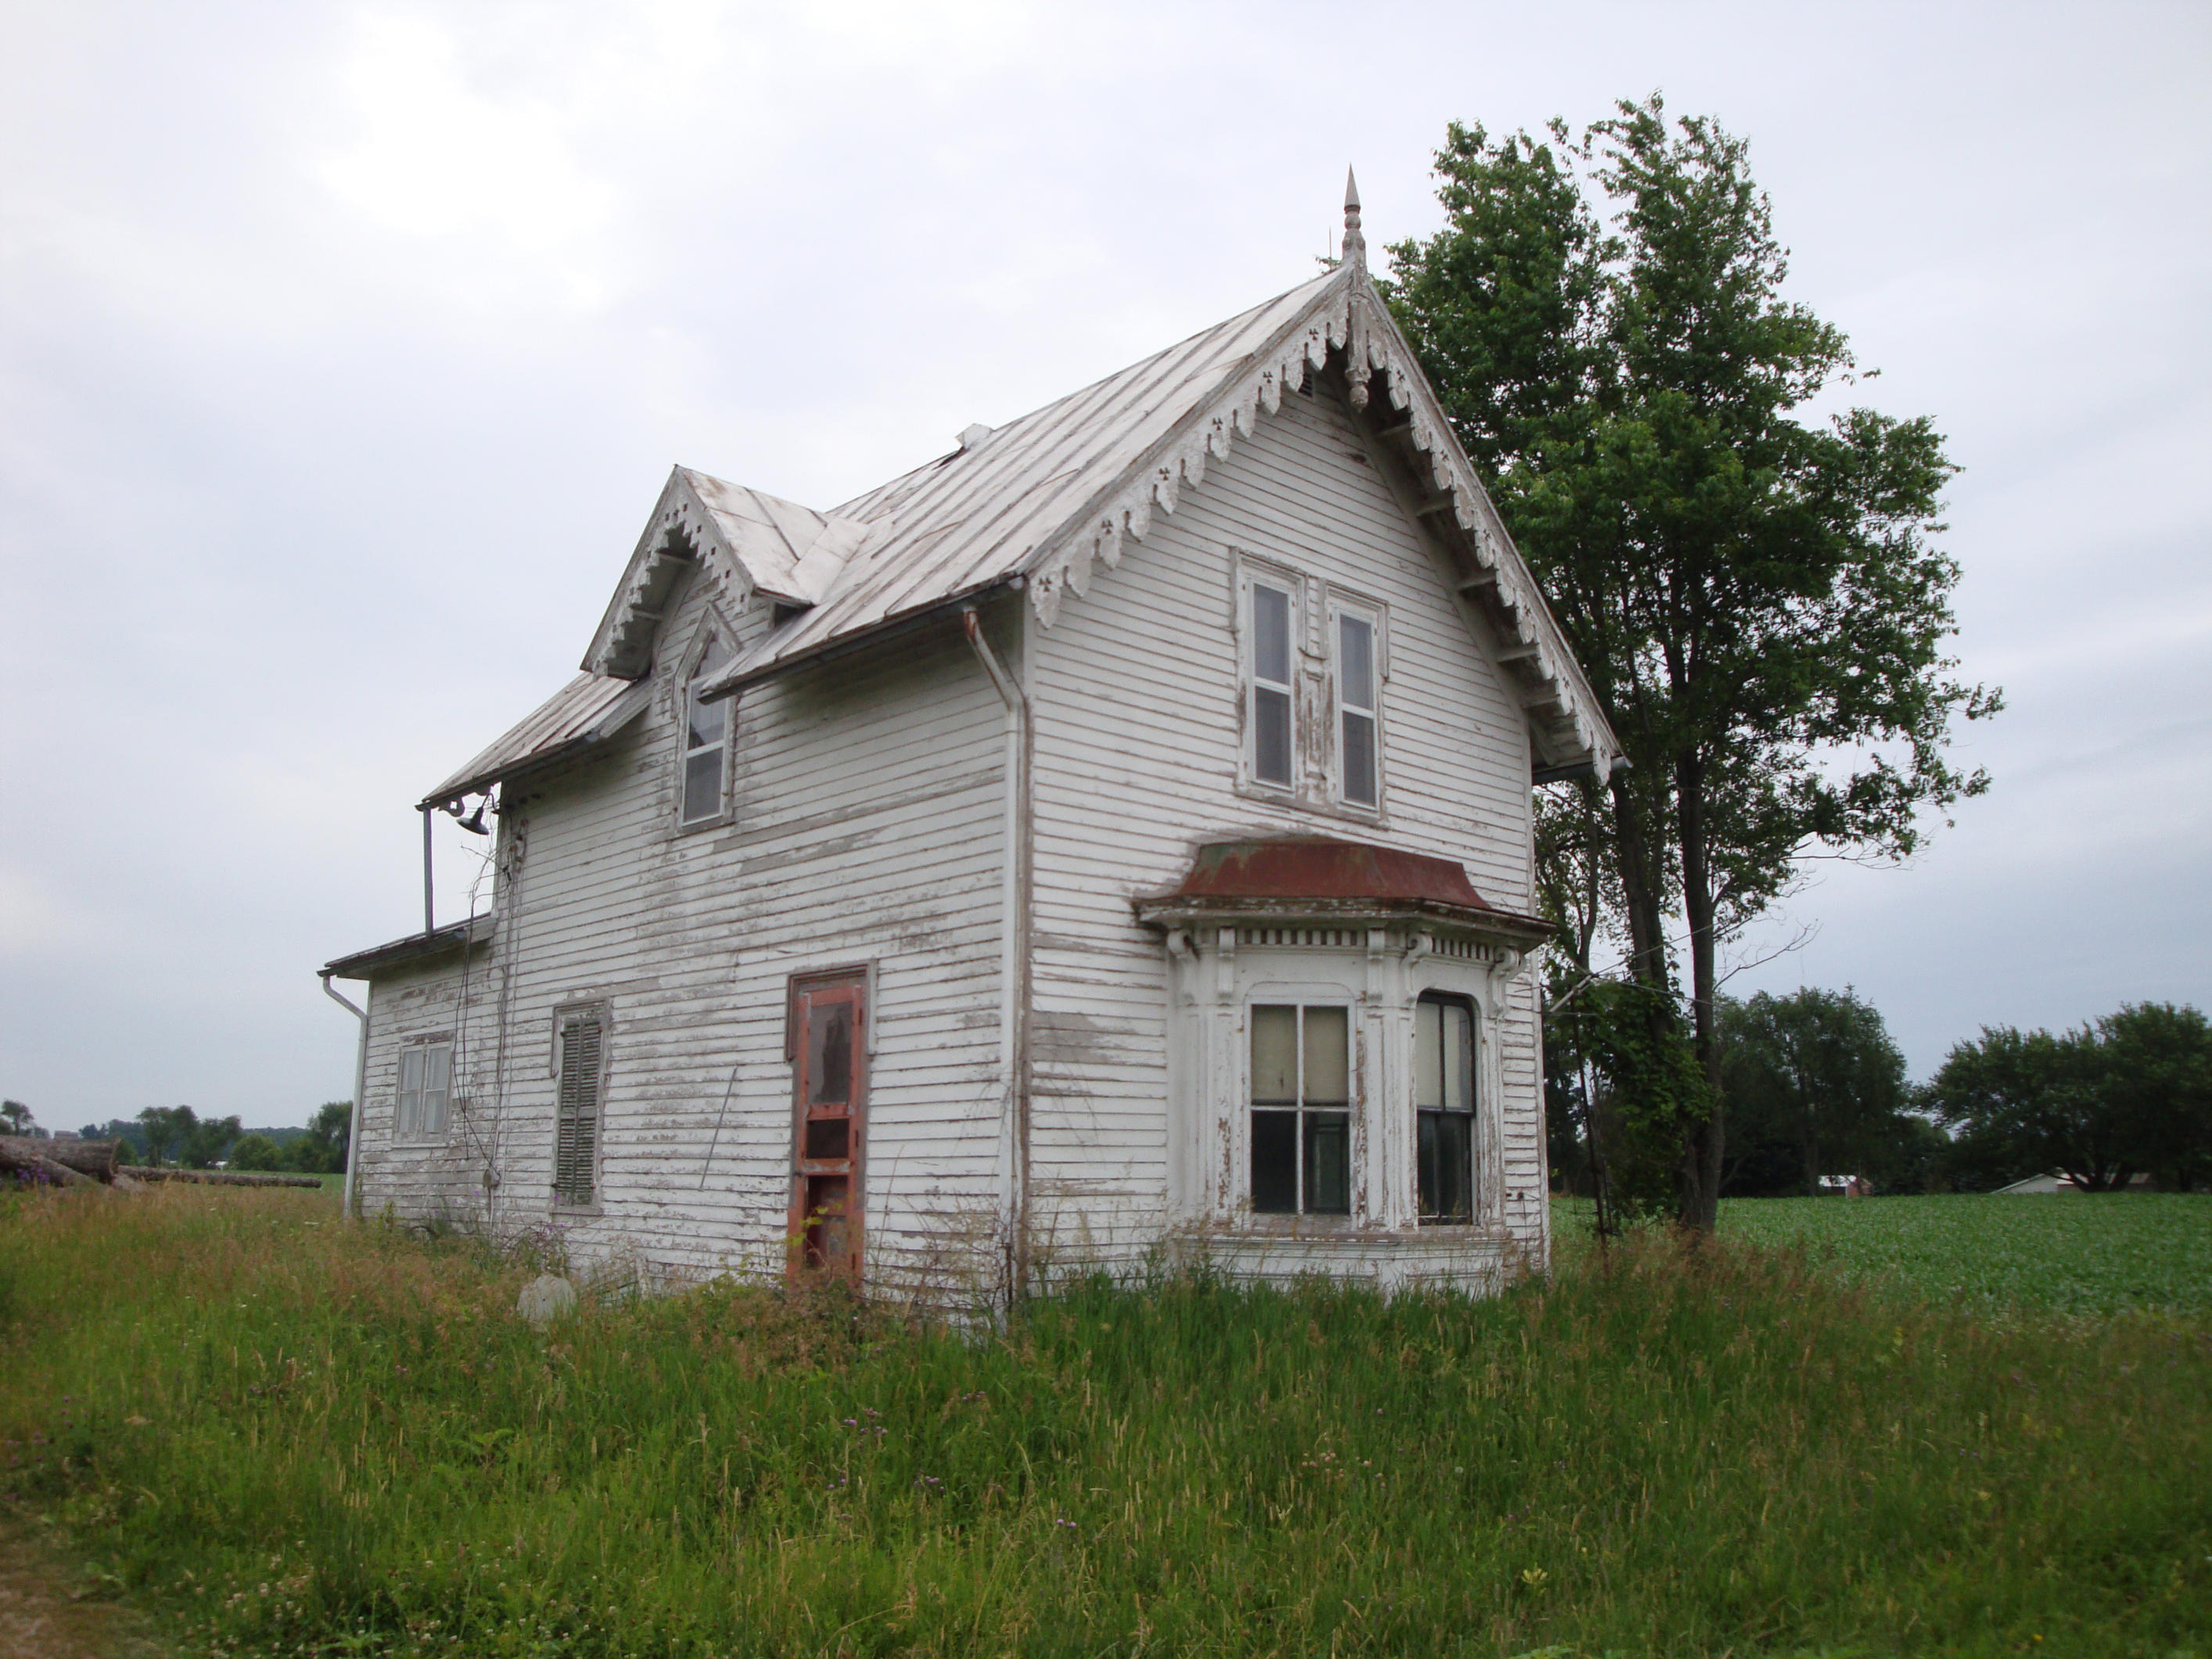 spooky old beat up farm house by Archangelical-Stock